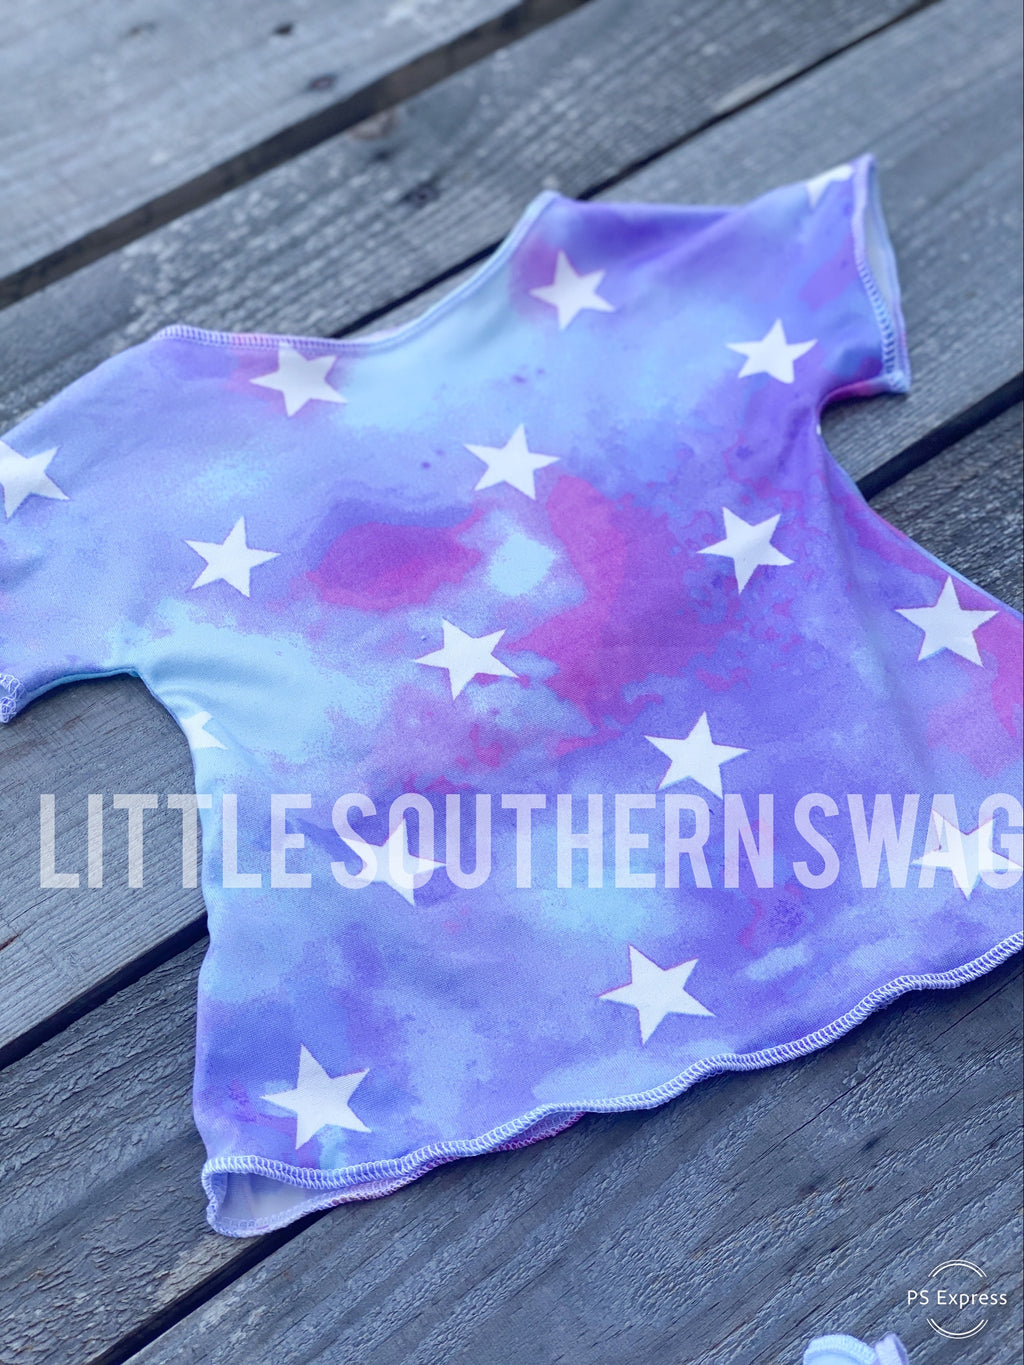 Starry Skies Top - Little Southern Swag